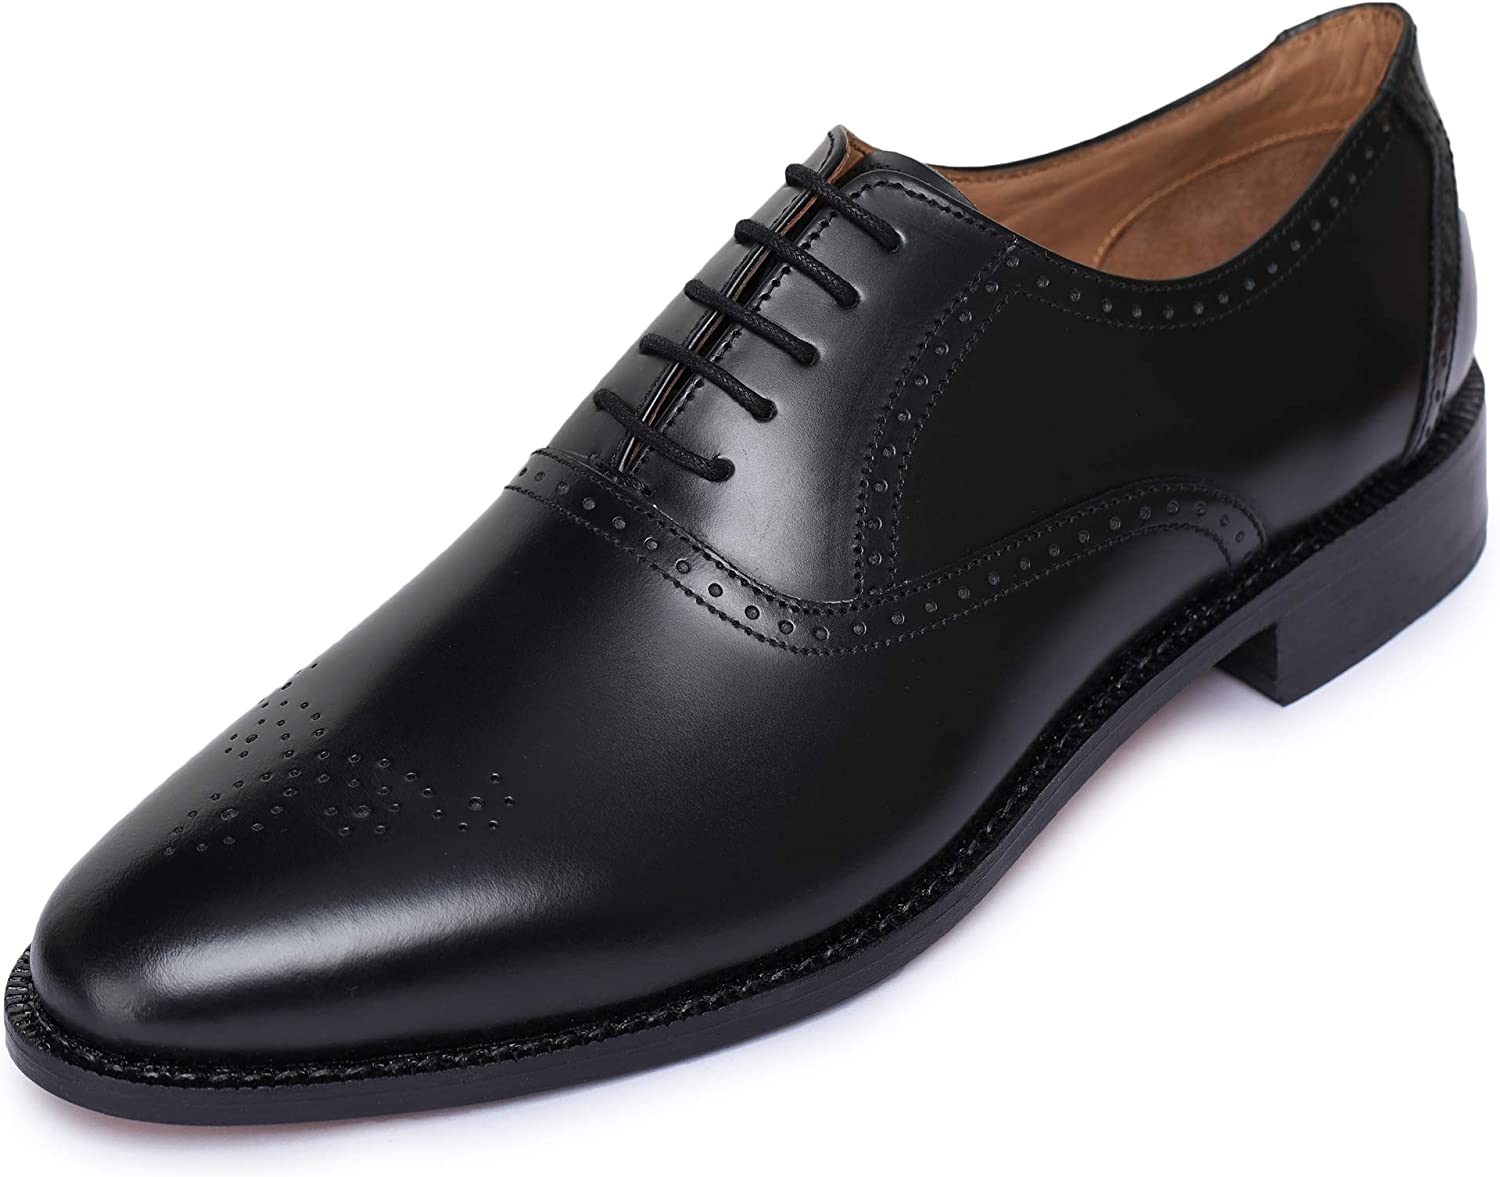 Lethato Handmade Brogue Oxford Goodyear Welted Genuine Leather Lace up Dress shoes